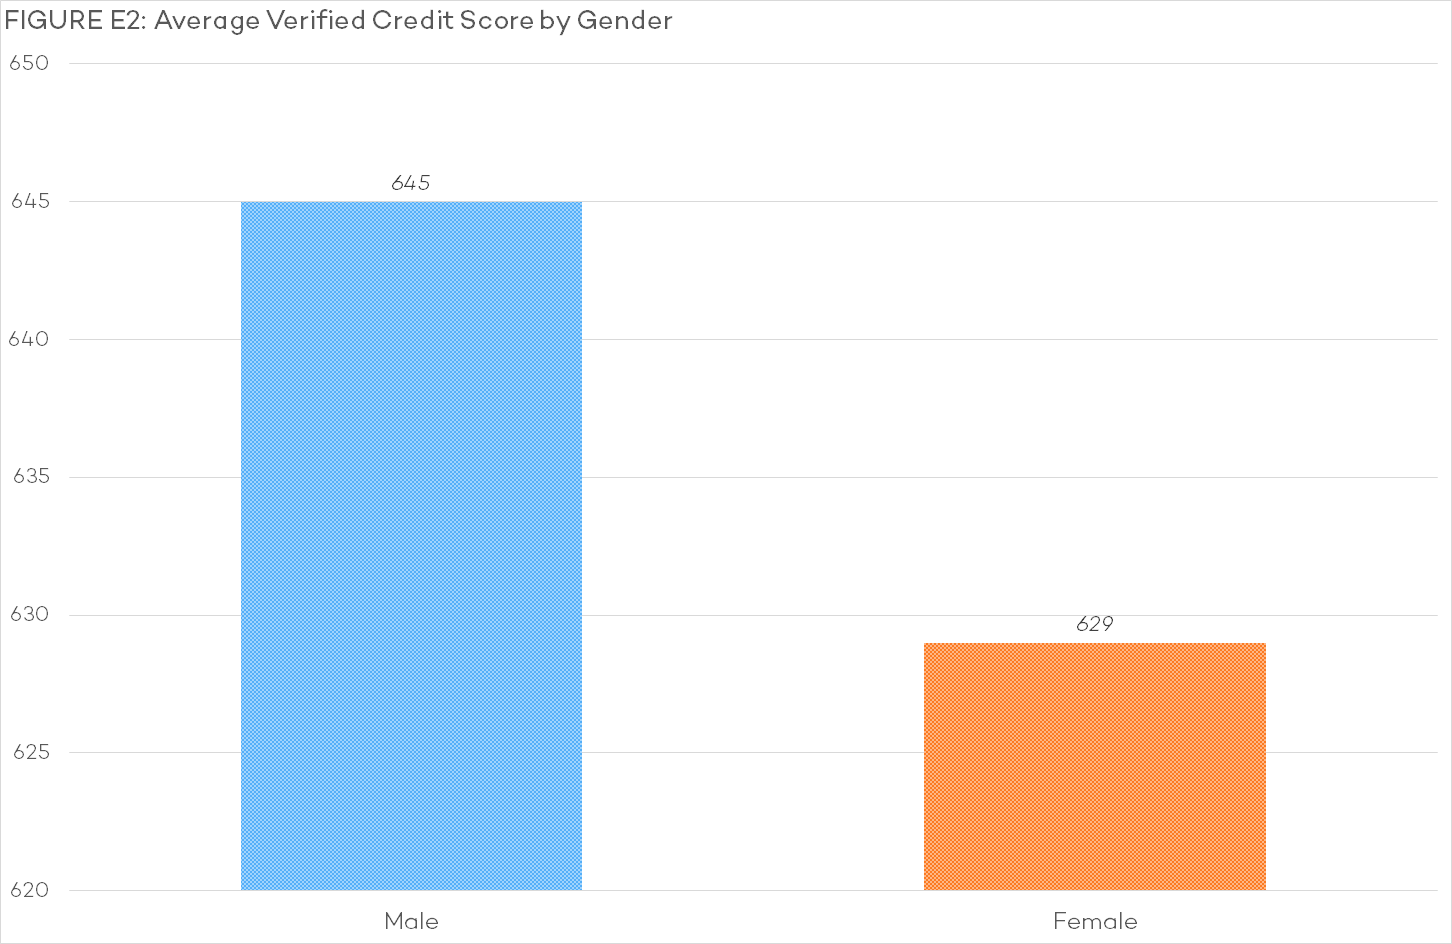 E2 - Average Verified Credit Score by Gender